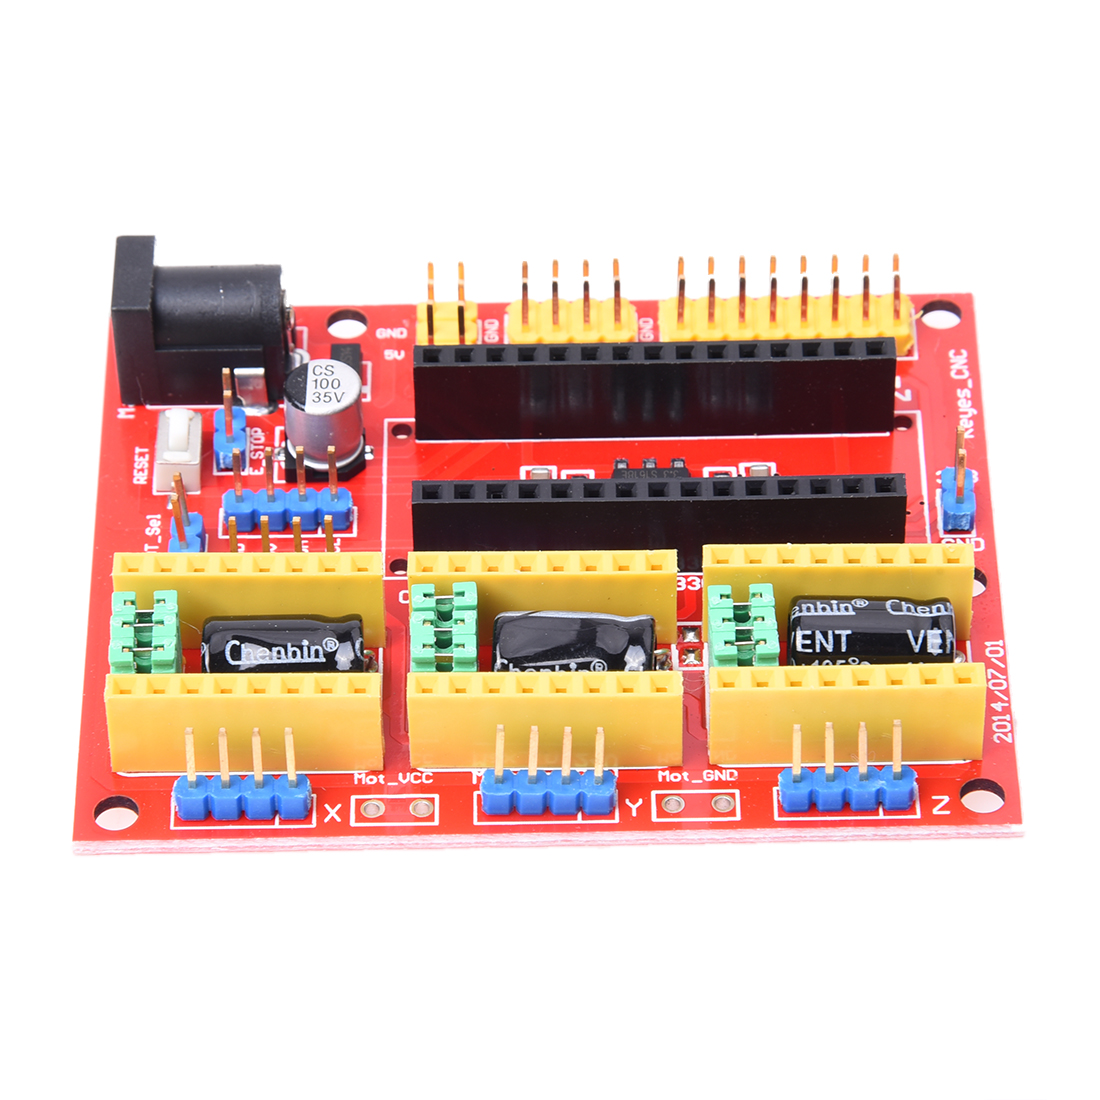 1 x Red CCL CNC V4 engraving machine expansion board For GRBL quiksilver windlake tarmac